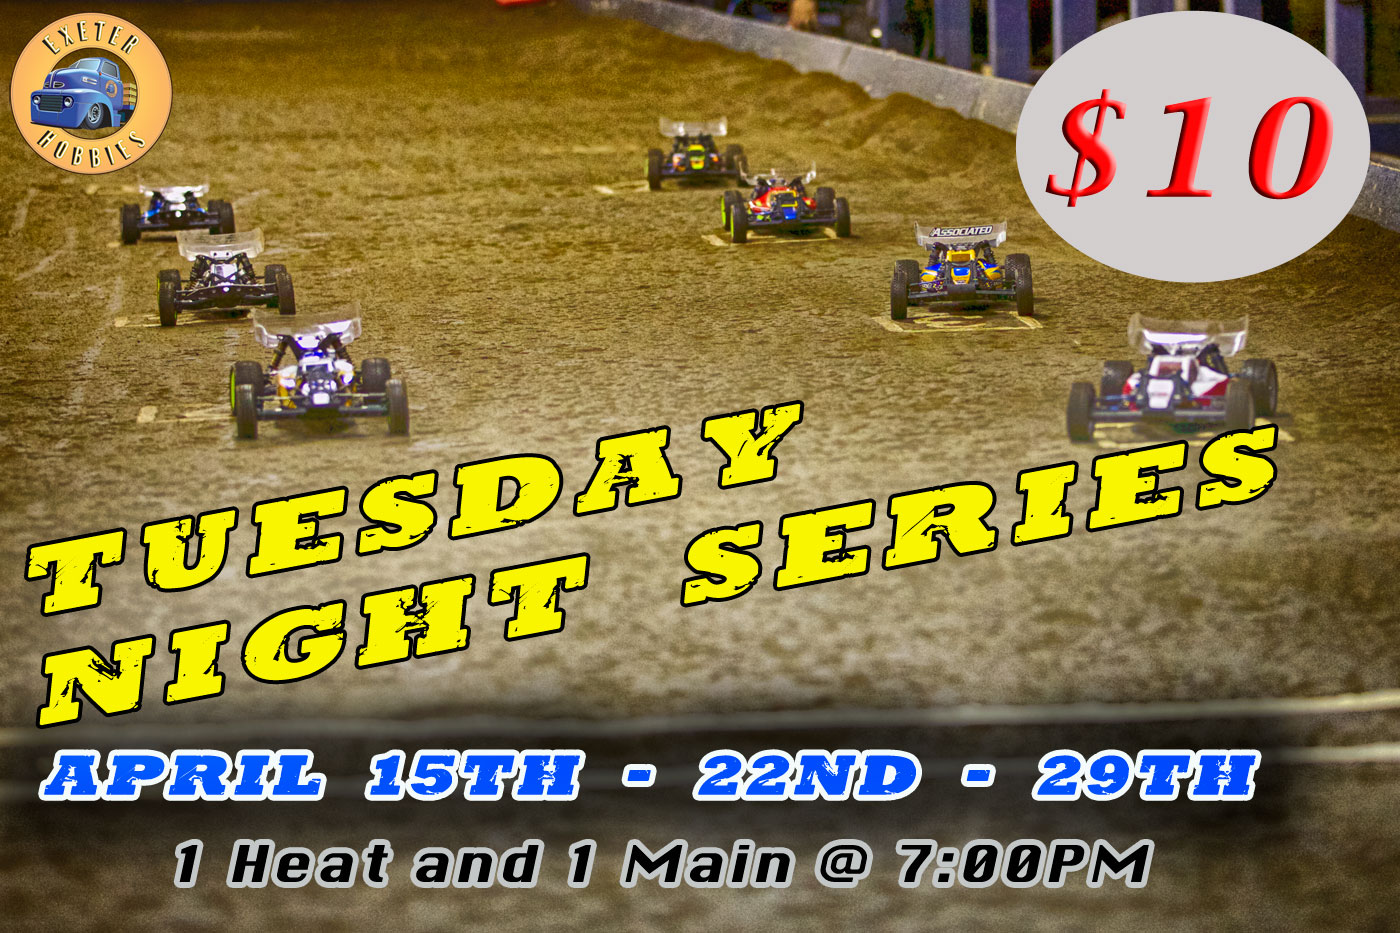 tuesday-night-series